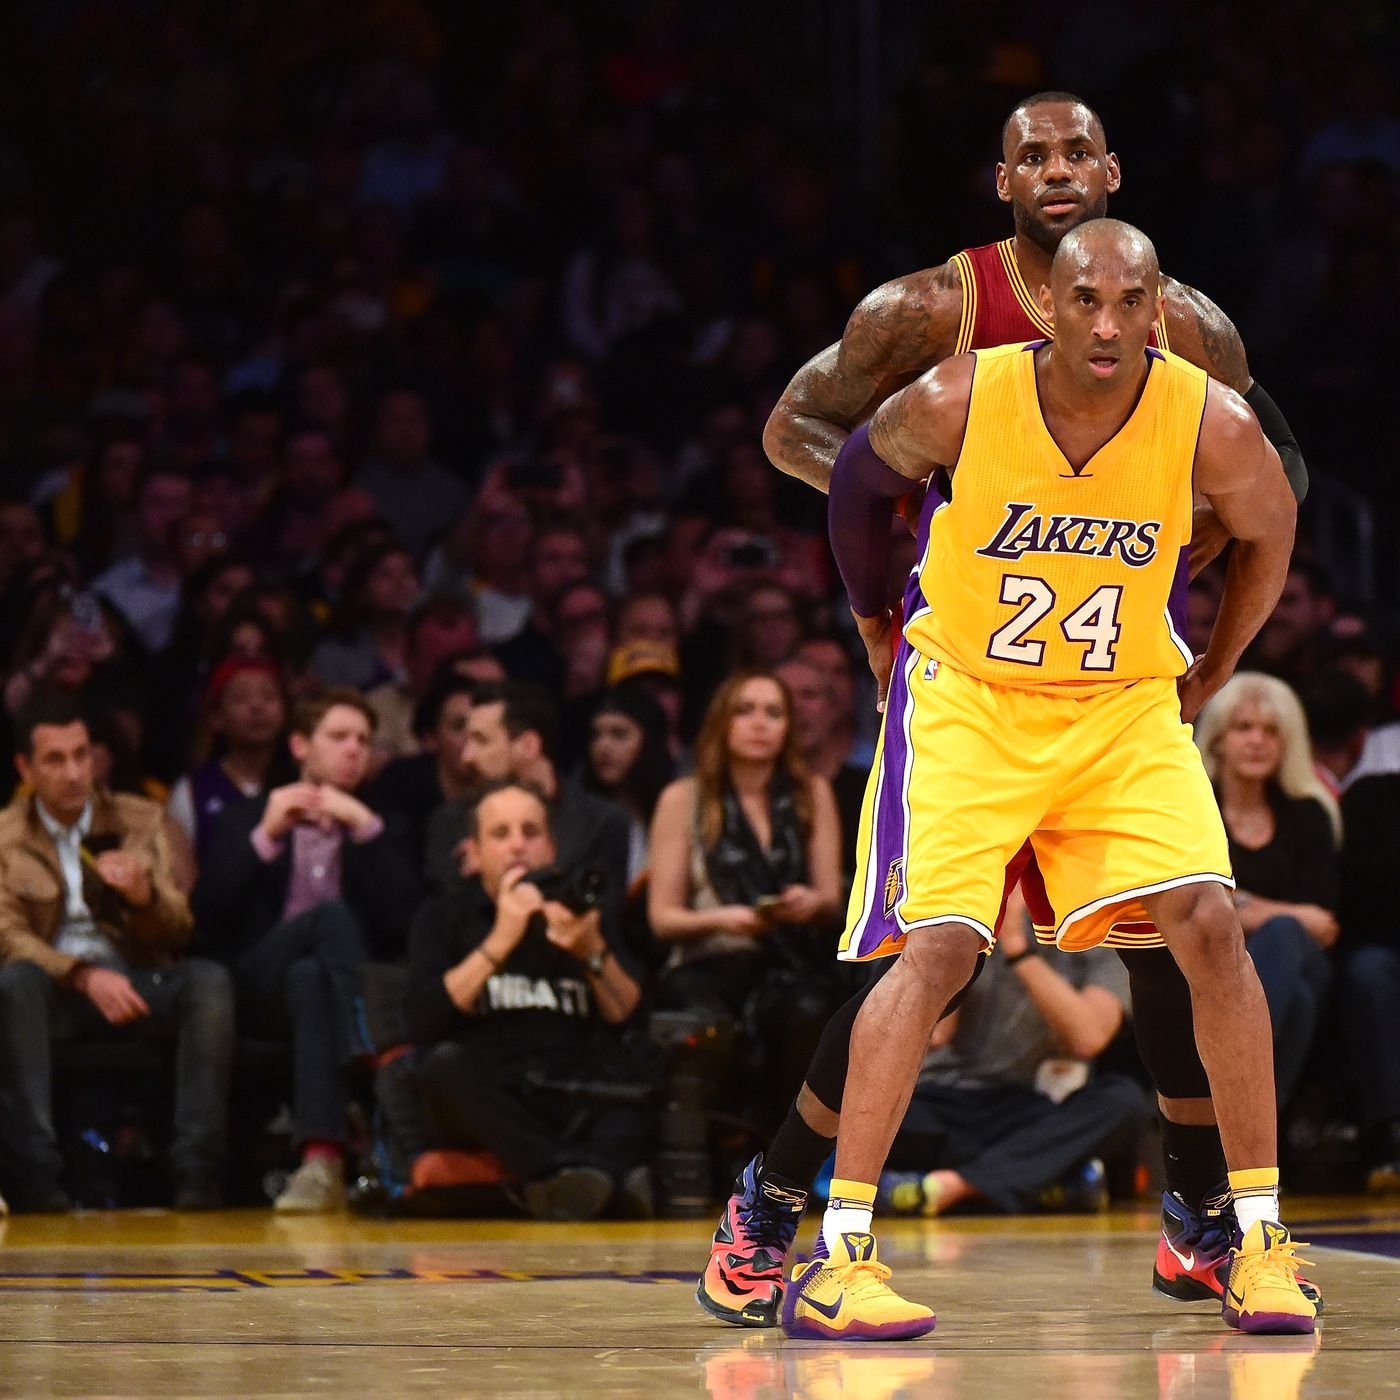 reputable site 61739 23694 LeBron James says it's 'unfair' for Lakers fans to compare ...